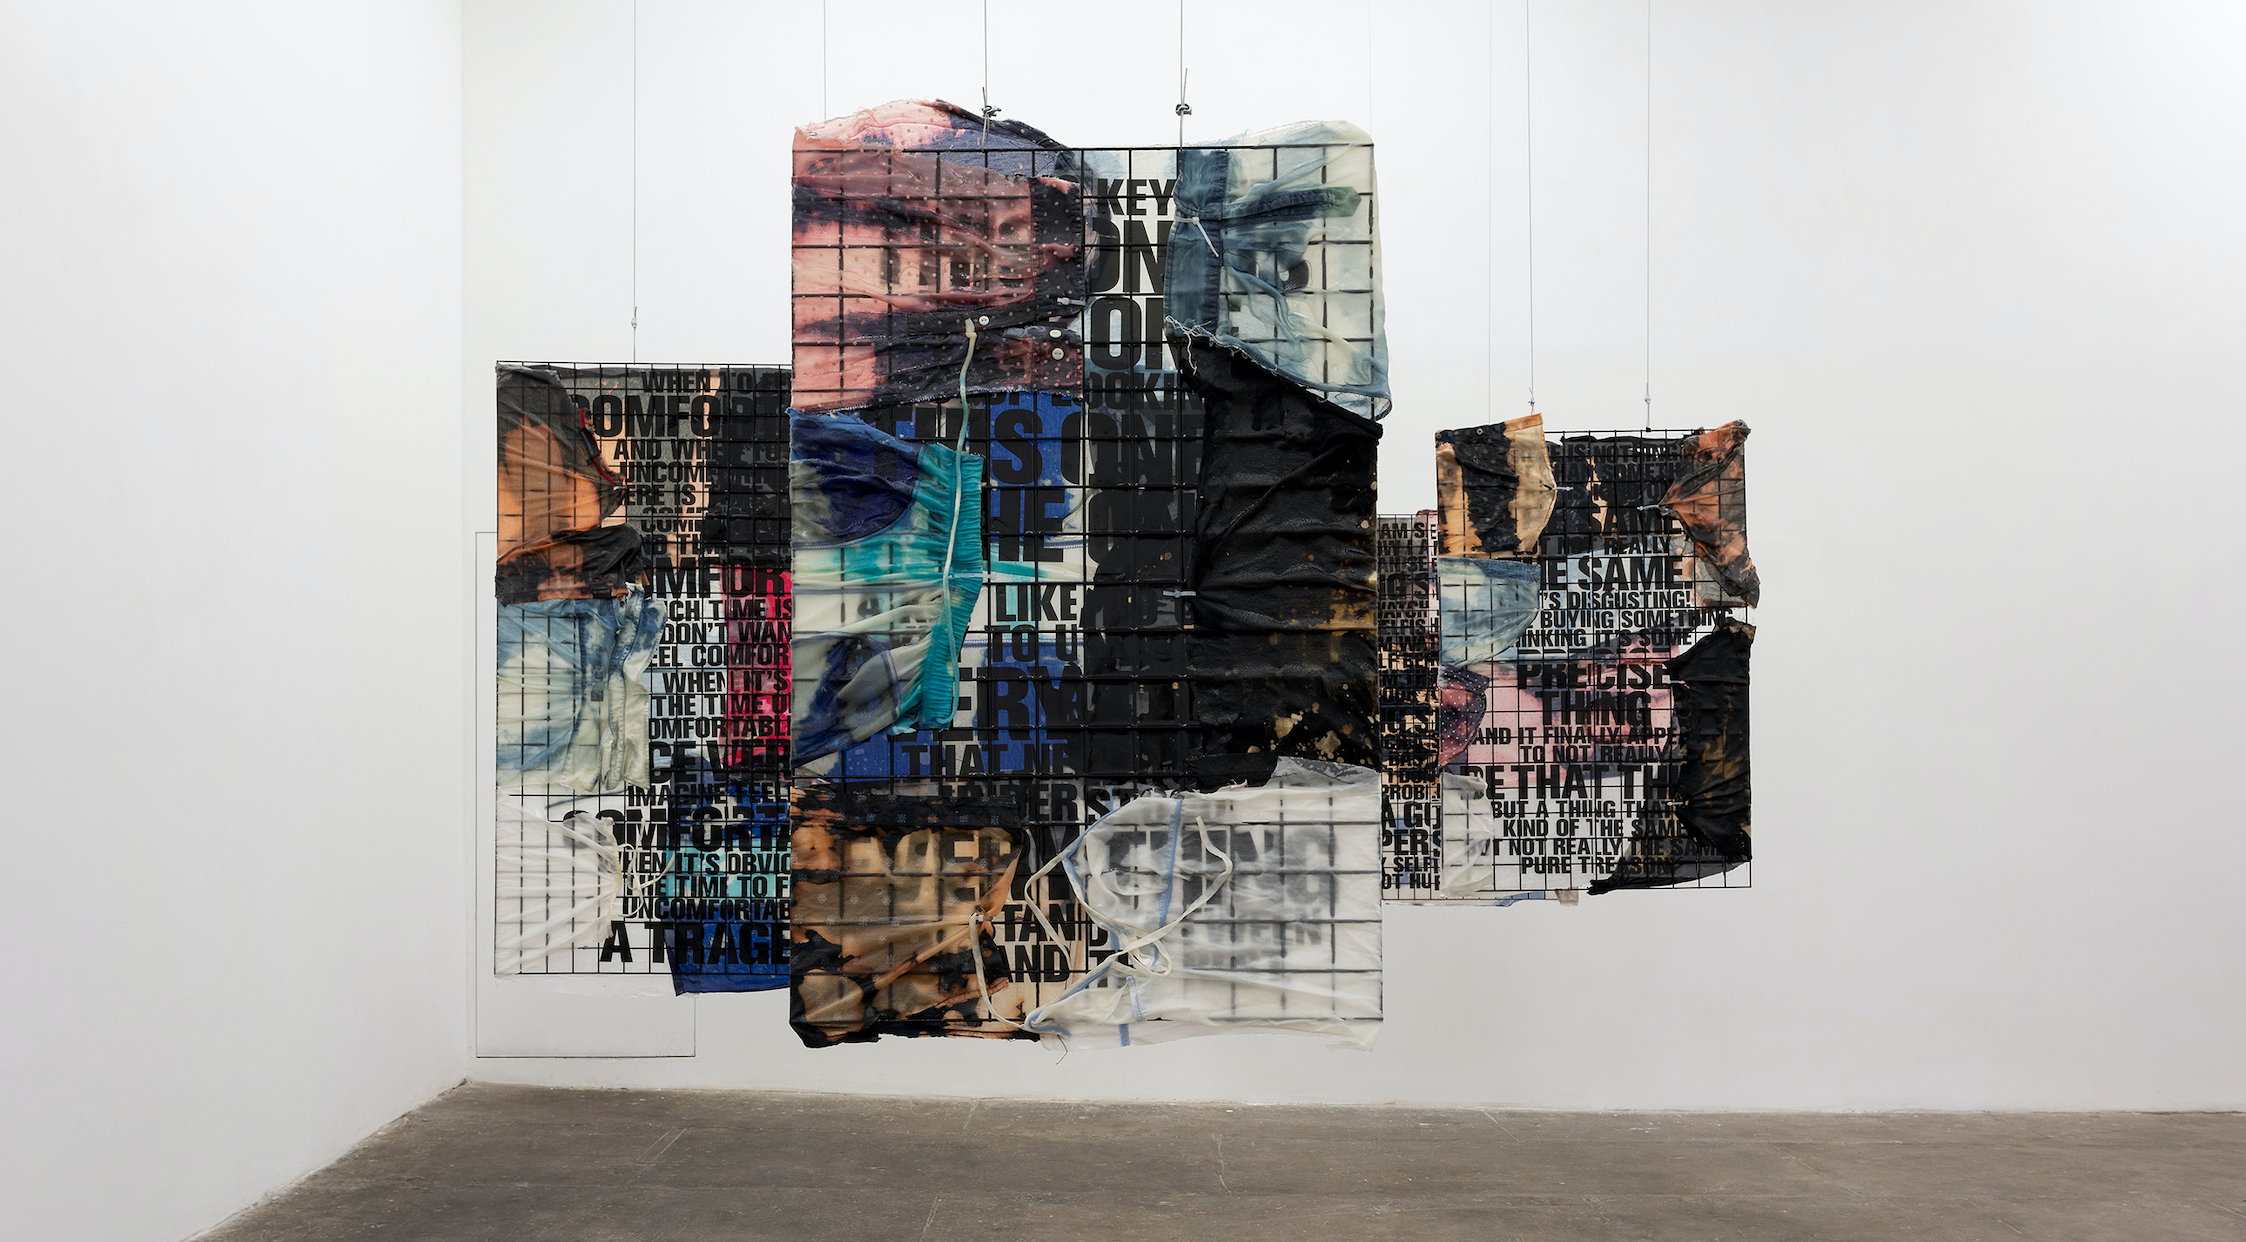 Ndayé Kouagou, installation view at T293, Rome, 18 June - 6 August 2021. Photo by Daniele Molajoli. Courtesy of the artist and T293, Rome.